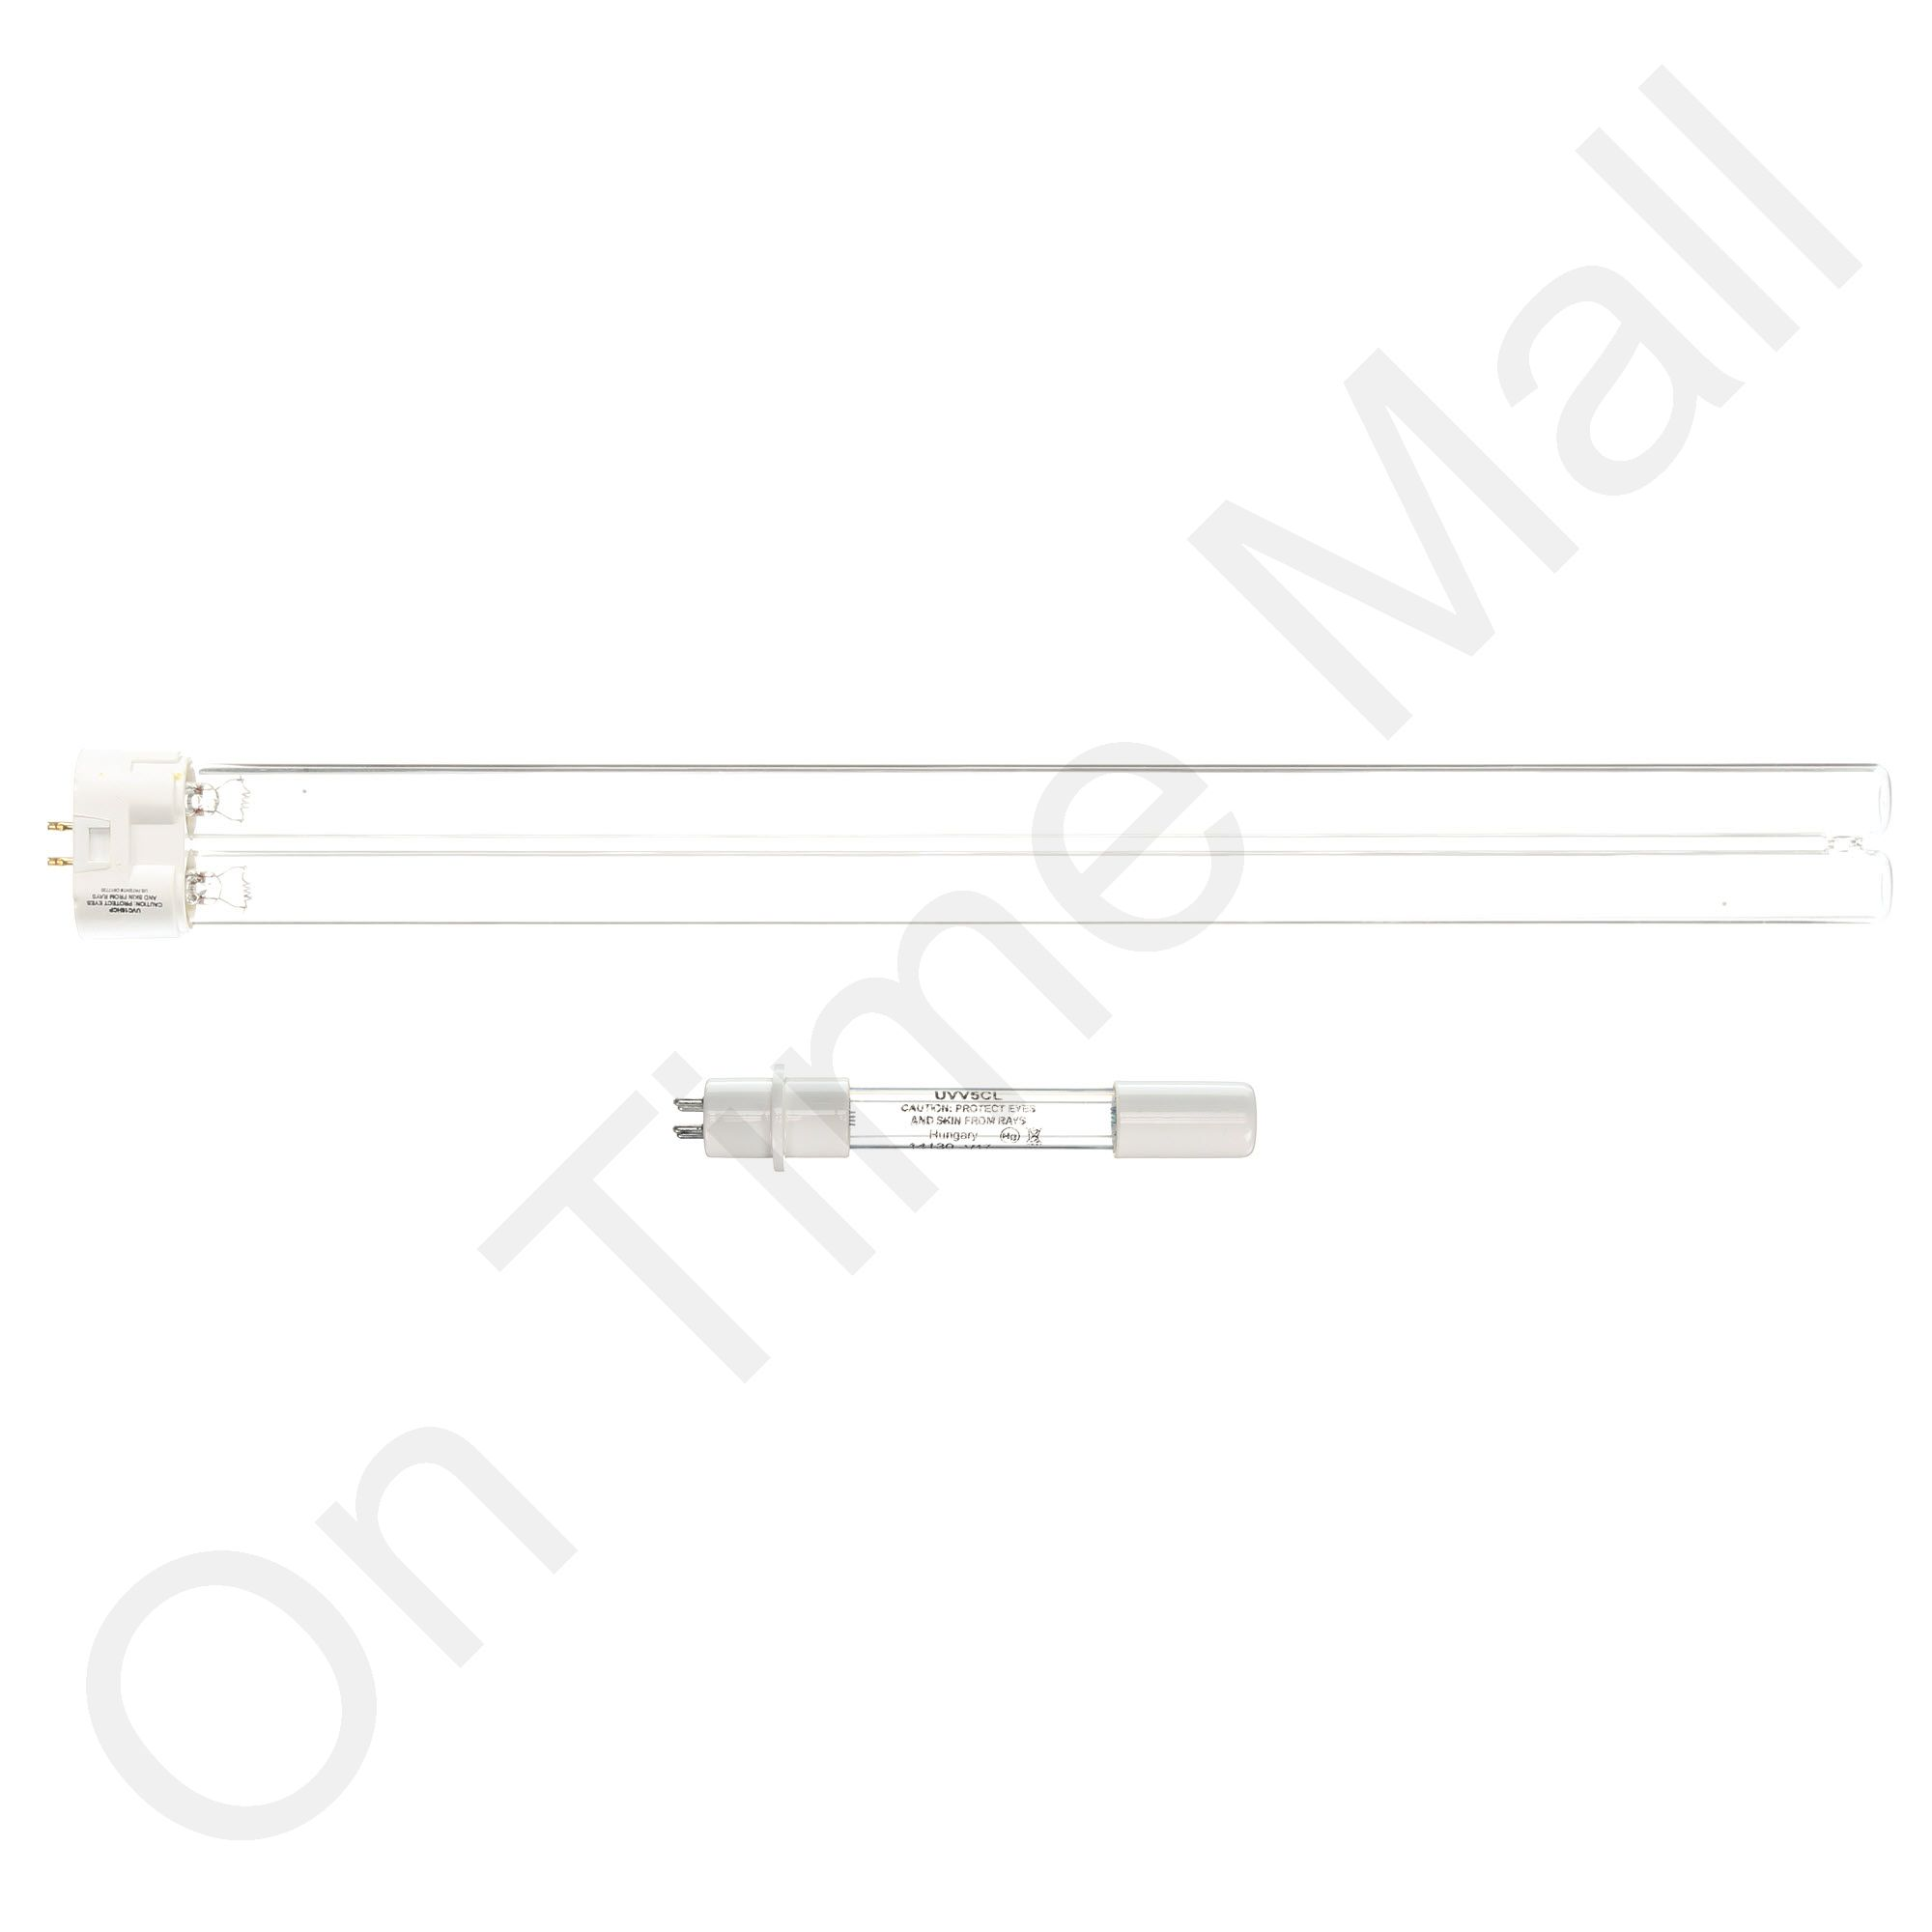 dynamic lsk 25403 16 replacement lamp kit dynamic lsk 25403 16 replacement lamp kit